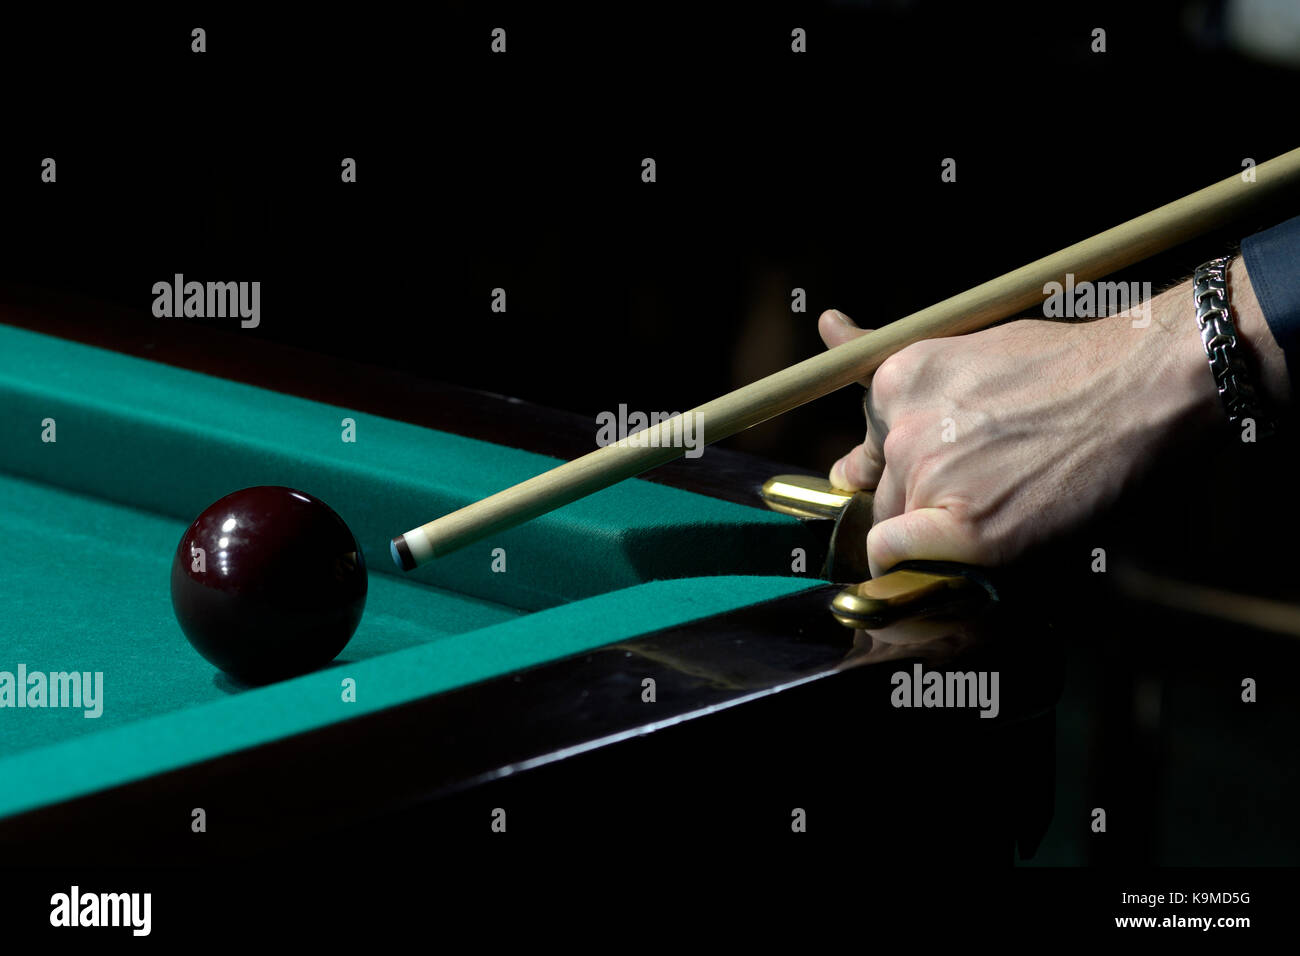 A player's arm with a cue on a pool table ready to stroke a ball - Stock Image